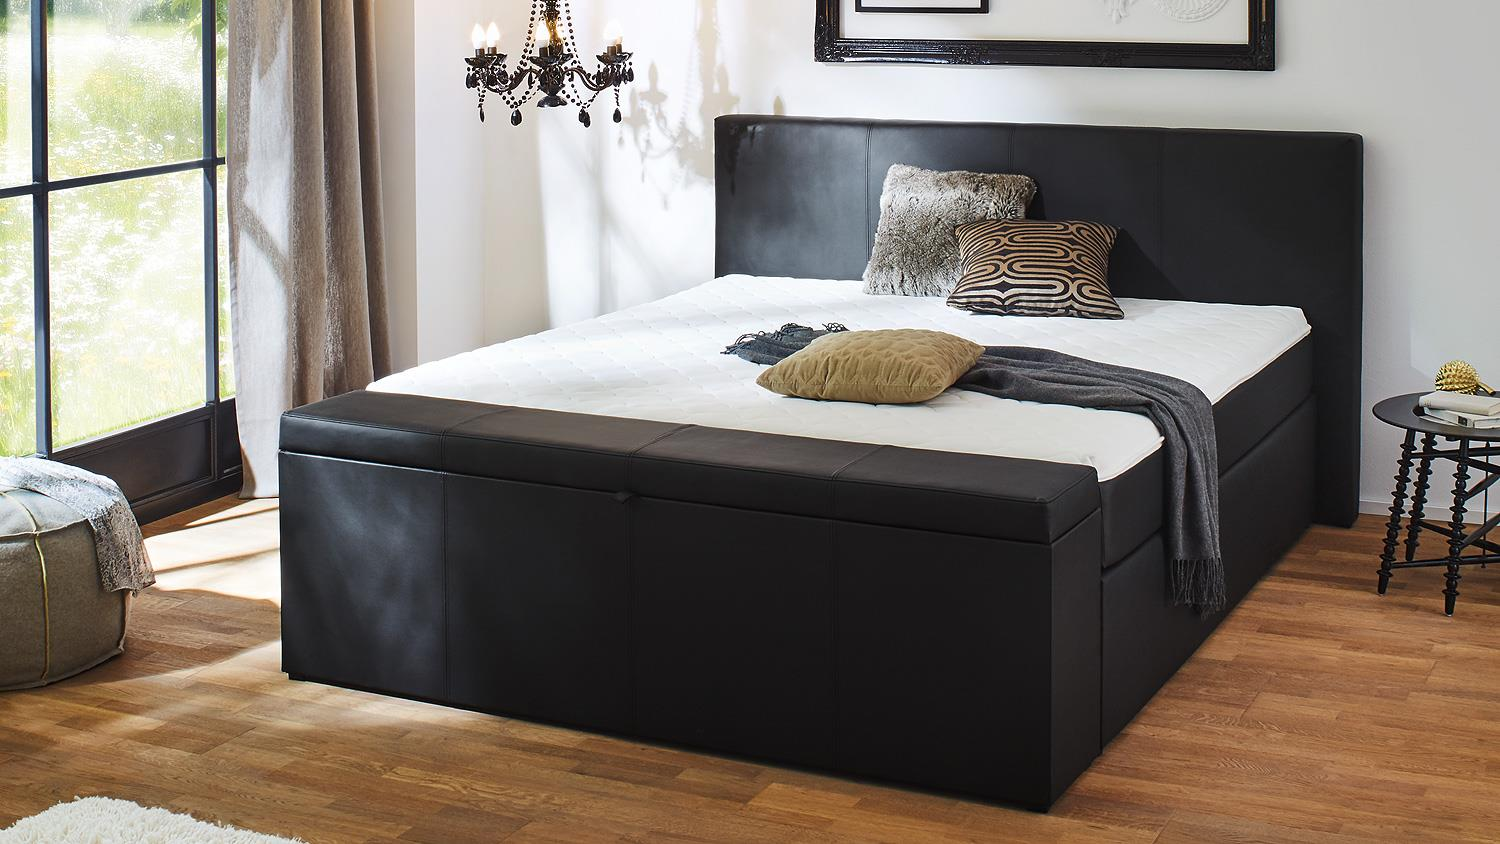 boxspringbett bx1160 chicago in stoff schwarz 180x200 cm. Black Bedroom Furniture Sets. Home Design Ideas